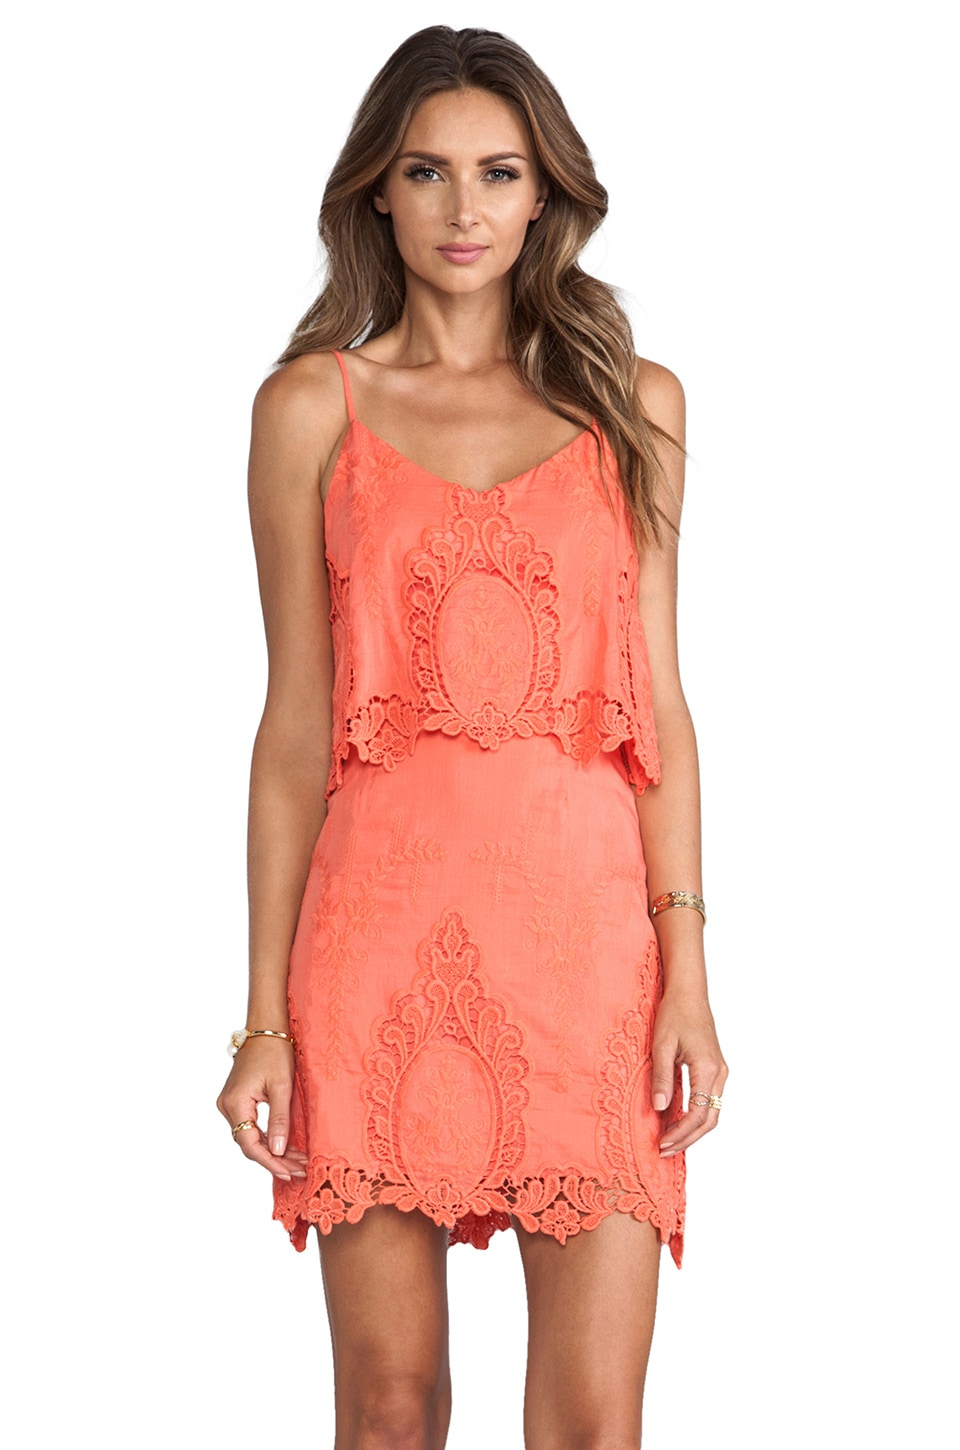 Dolce Vita Jeralyn Petticoat Embroidery Mini Dress in Melon